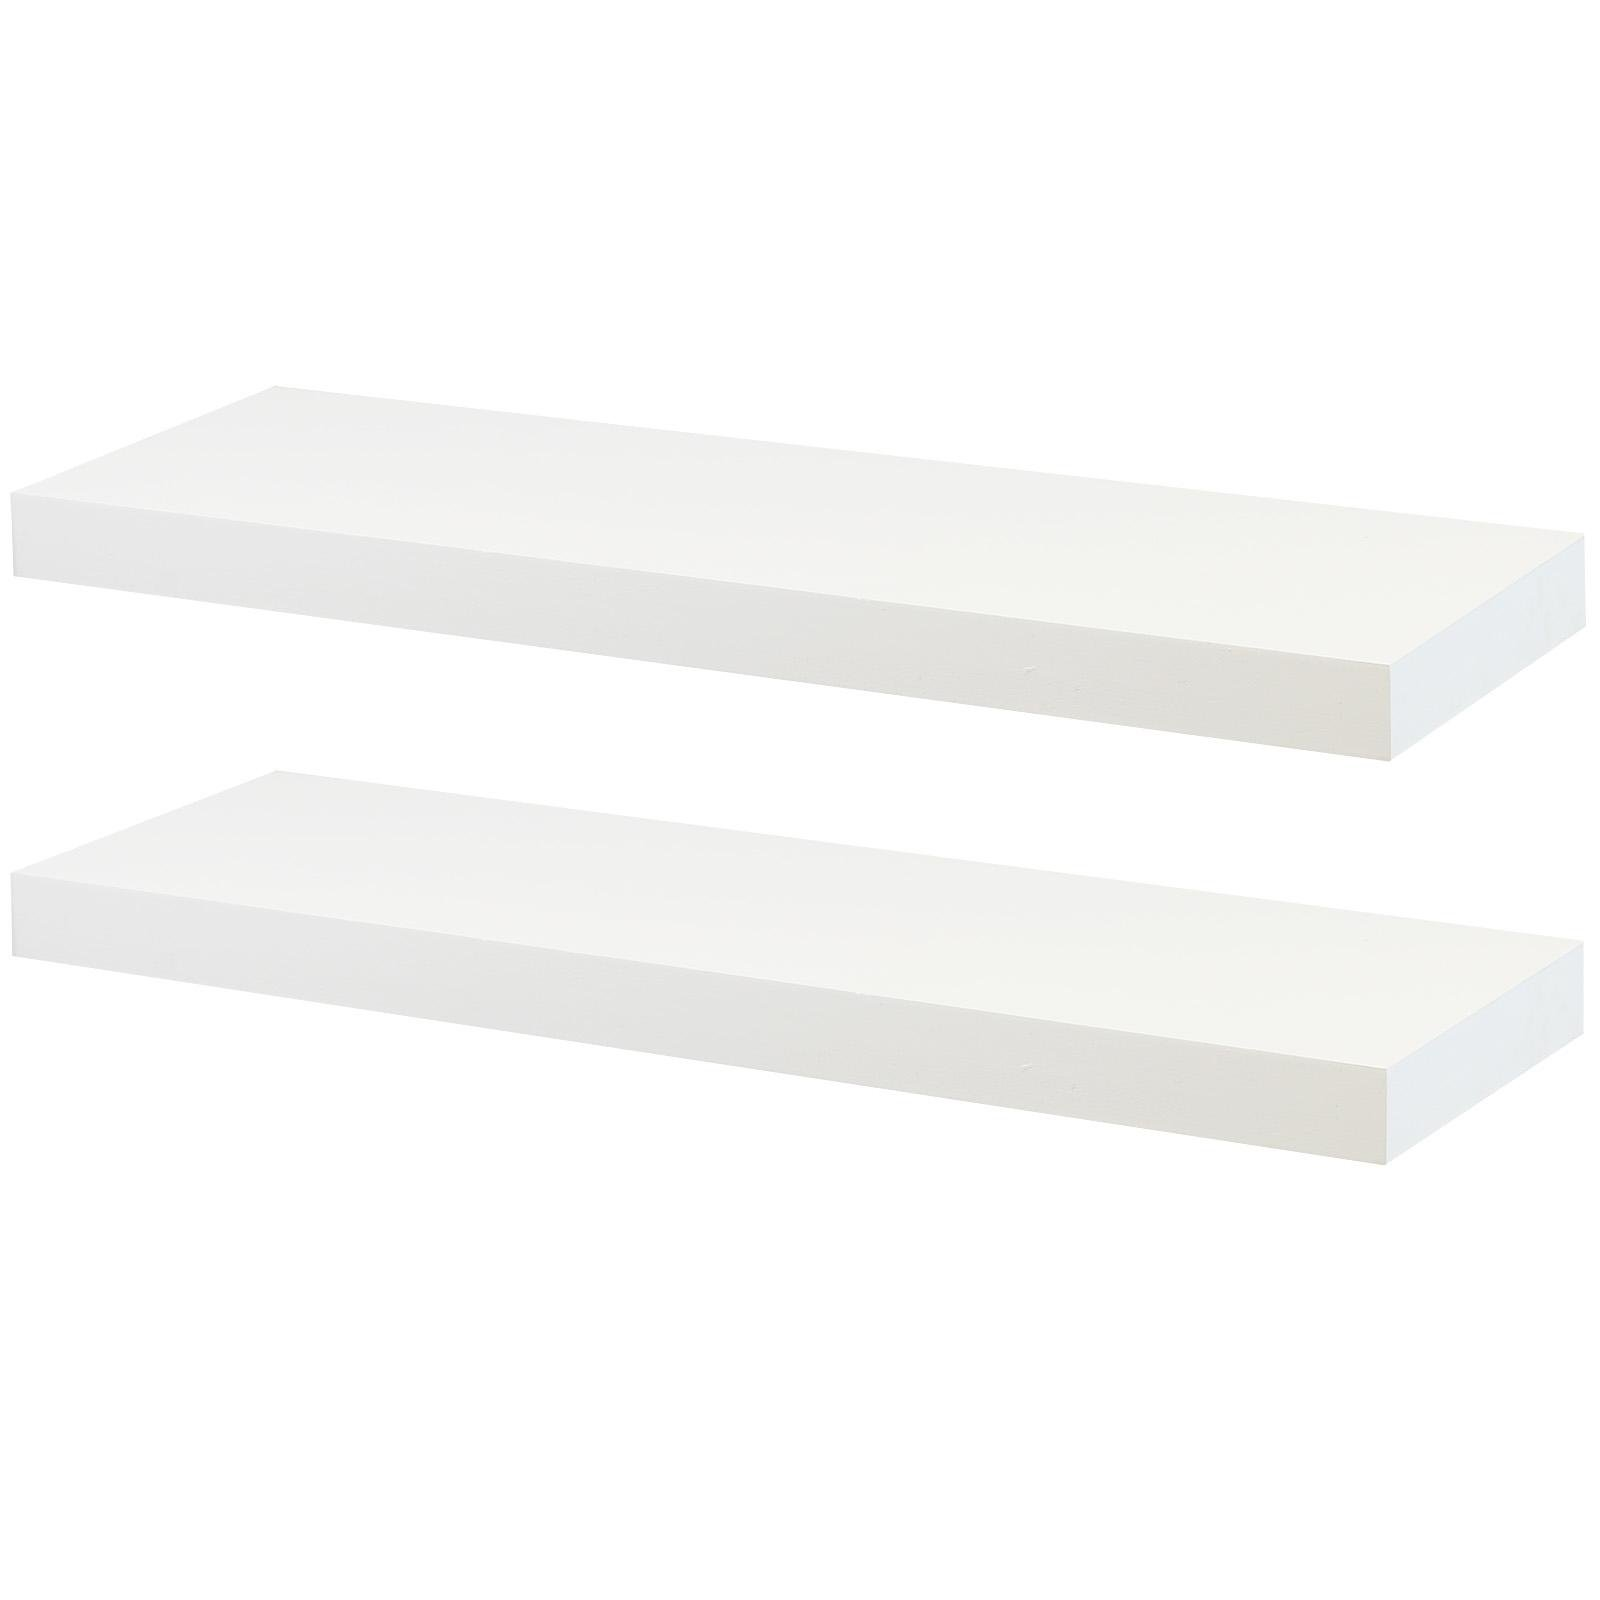 image-Hartleys Set of 2 Rectangular Floating Wall Shelves - 60cm - White